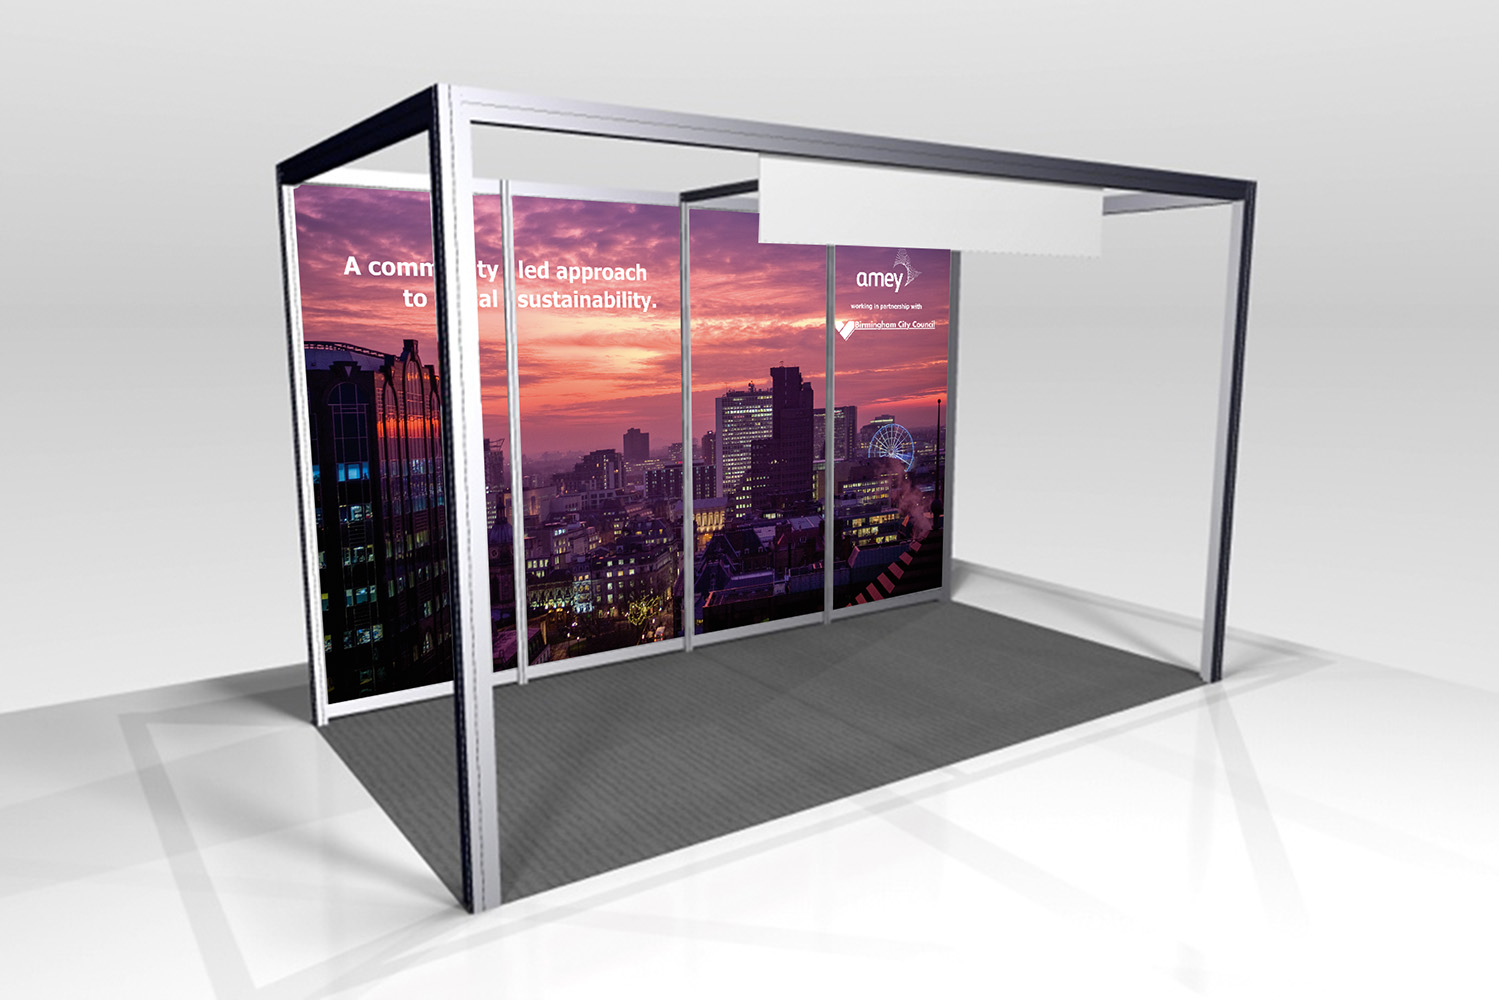 Exhibition Stand Design Hampshire : Exhibition stand and advert design for amey at basecities